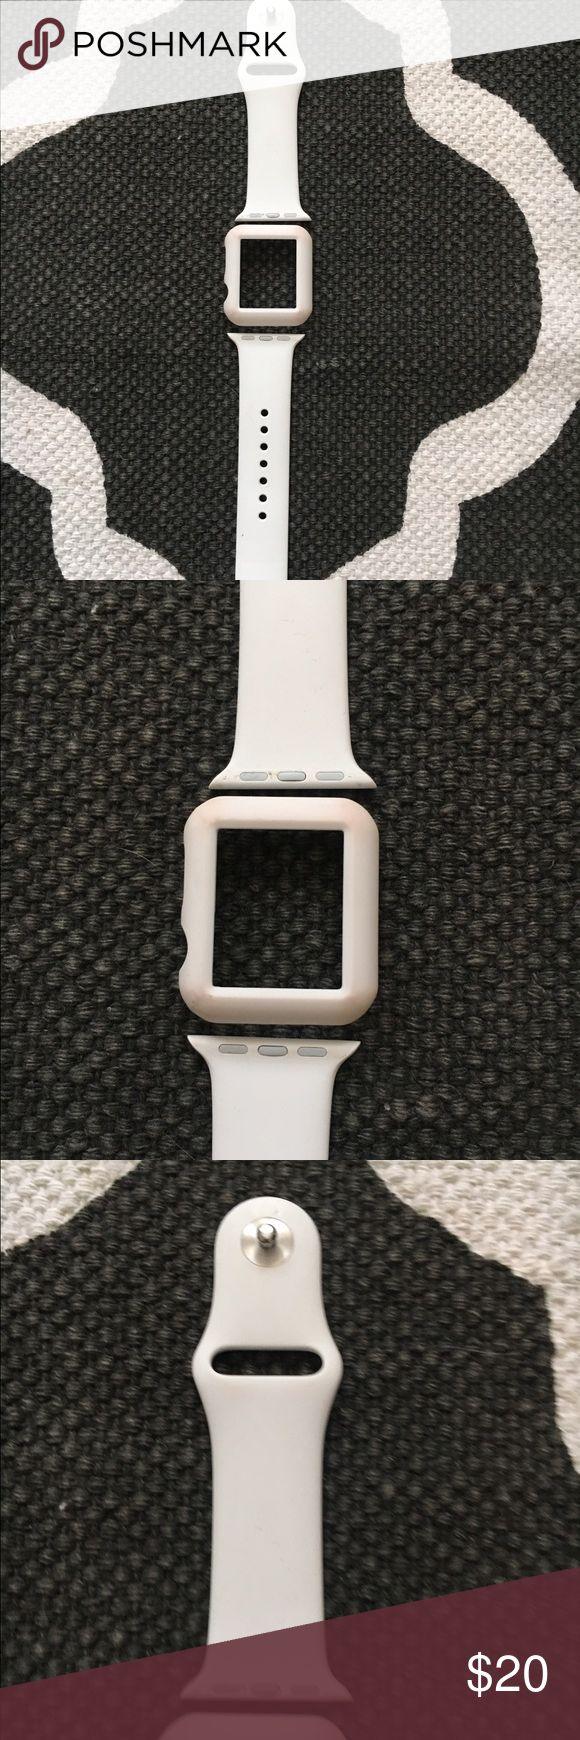 Apple Band & Protective Case Apple Band & Protective Case Size S/M - Worn Apple Accessories Watches